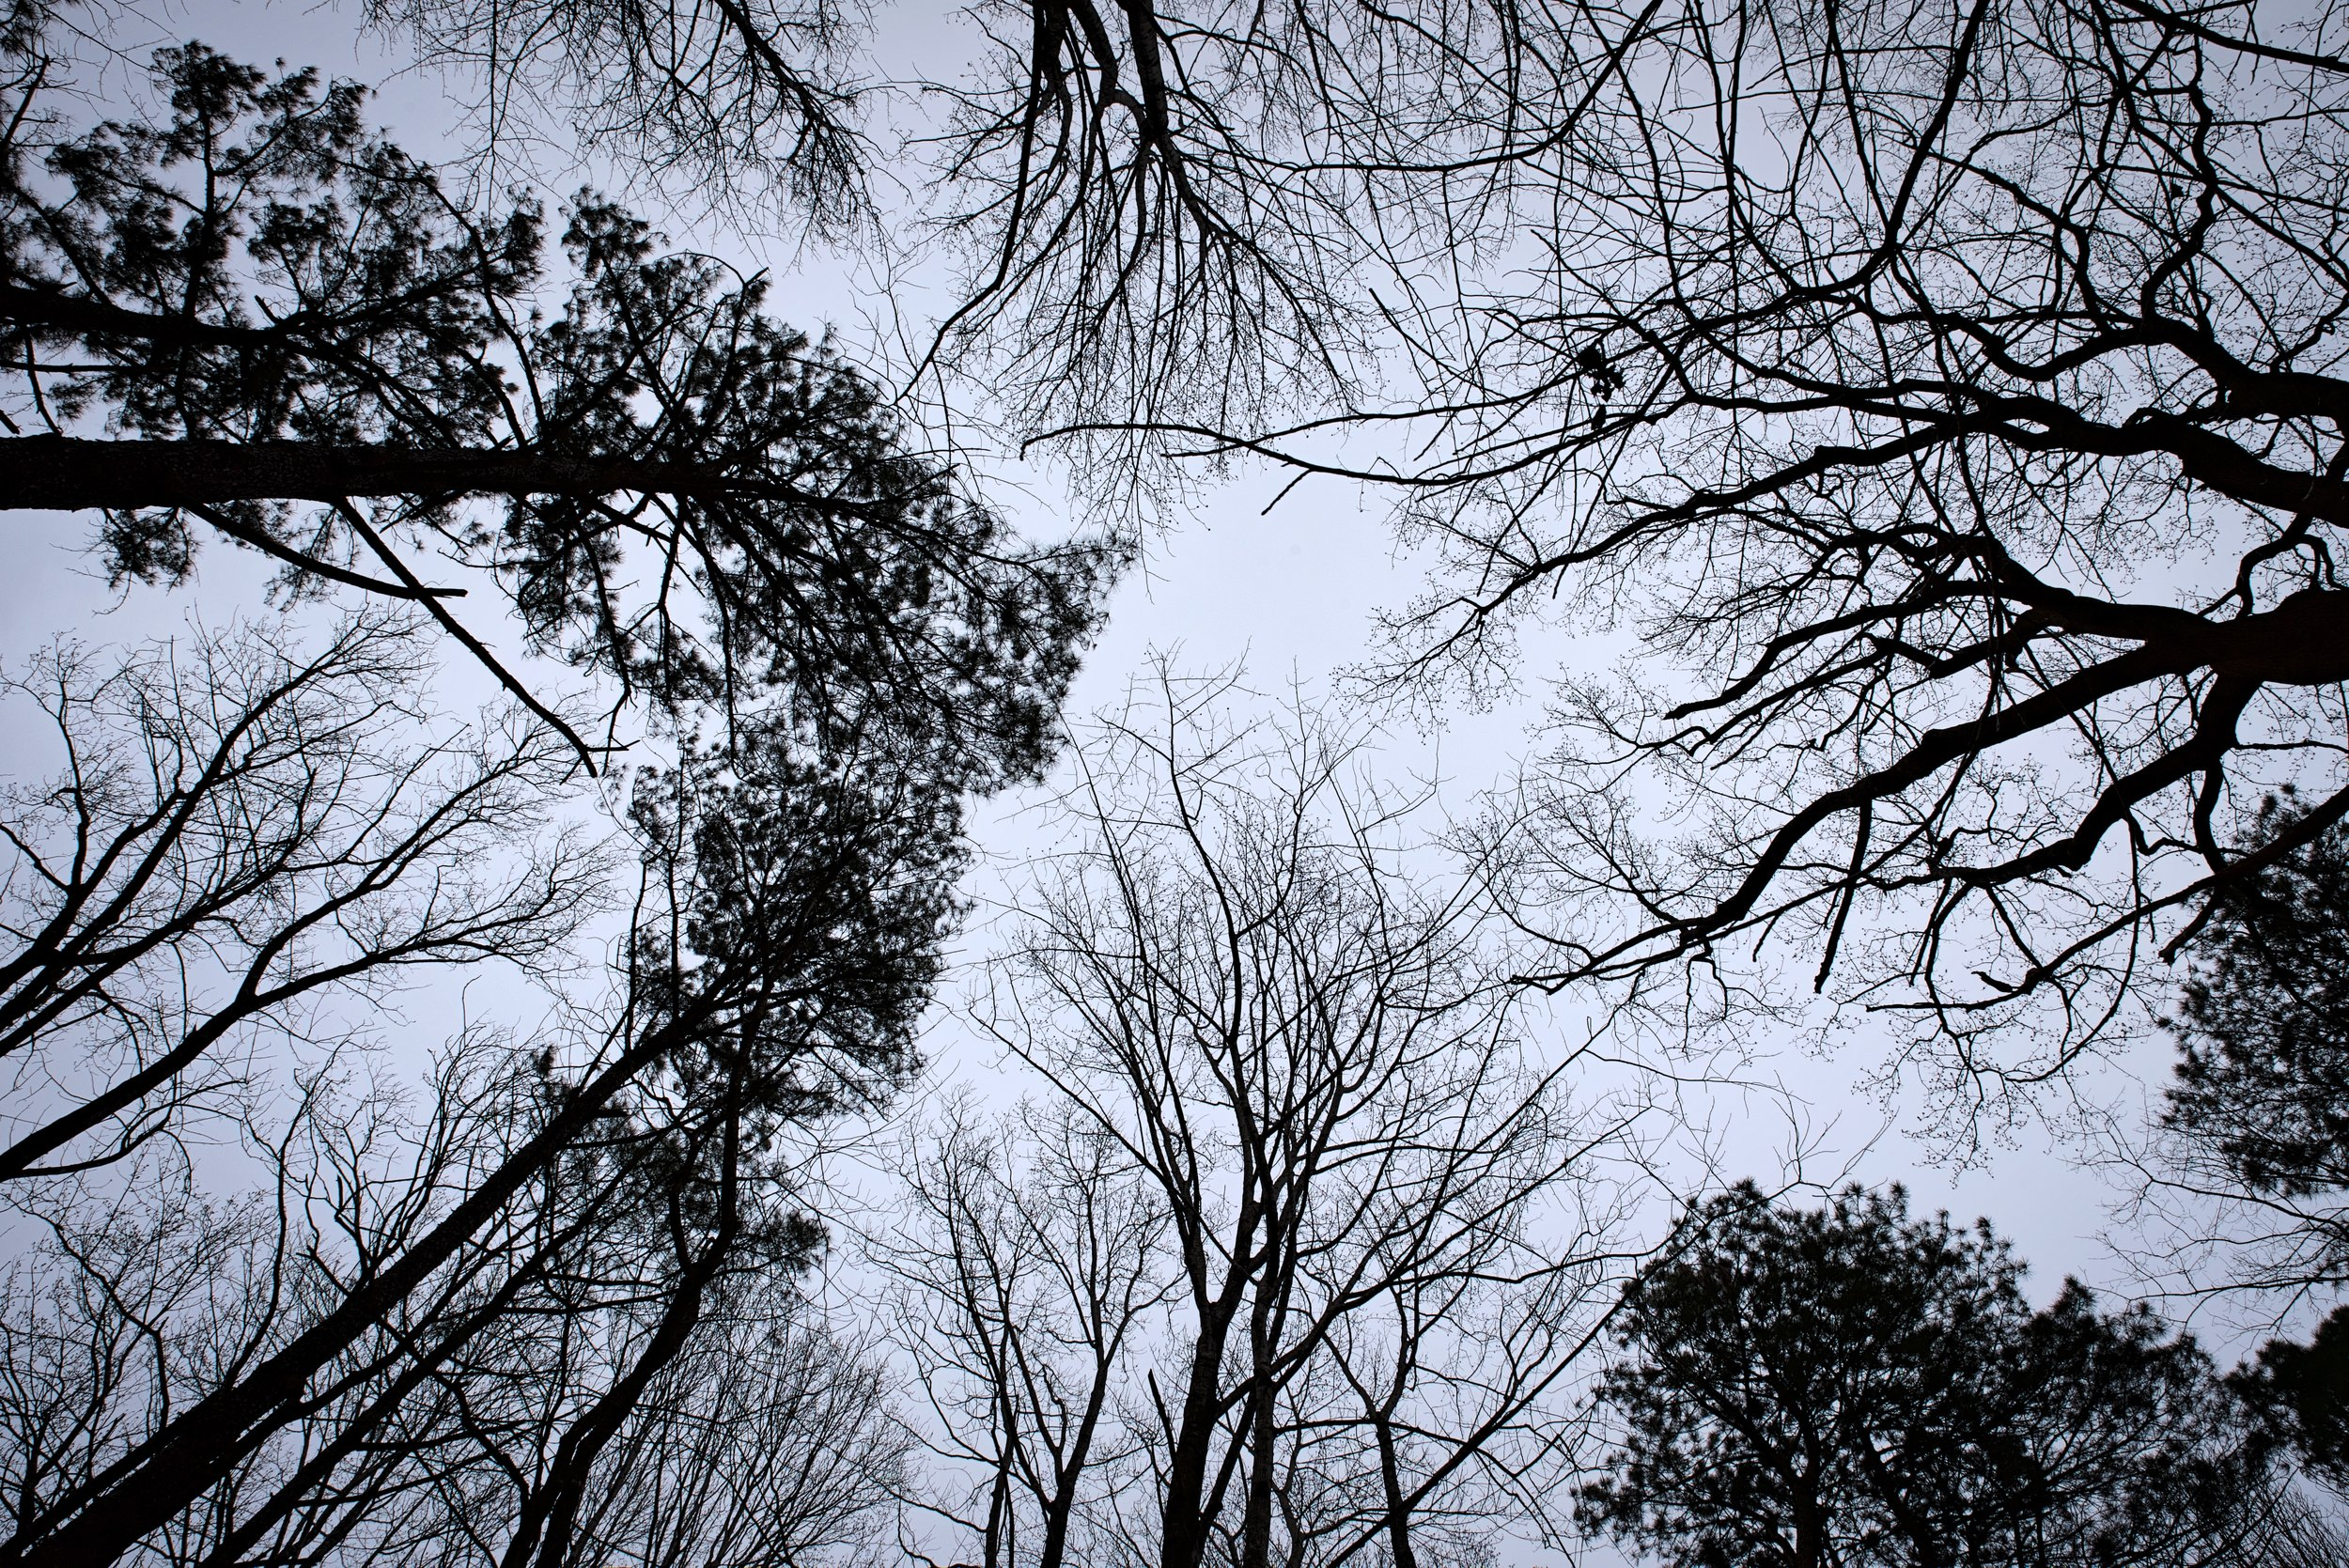 Once you leave the Cloud Chamber for the Trees and Sky you can look up and see the trees that were projected in chamber.